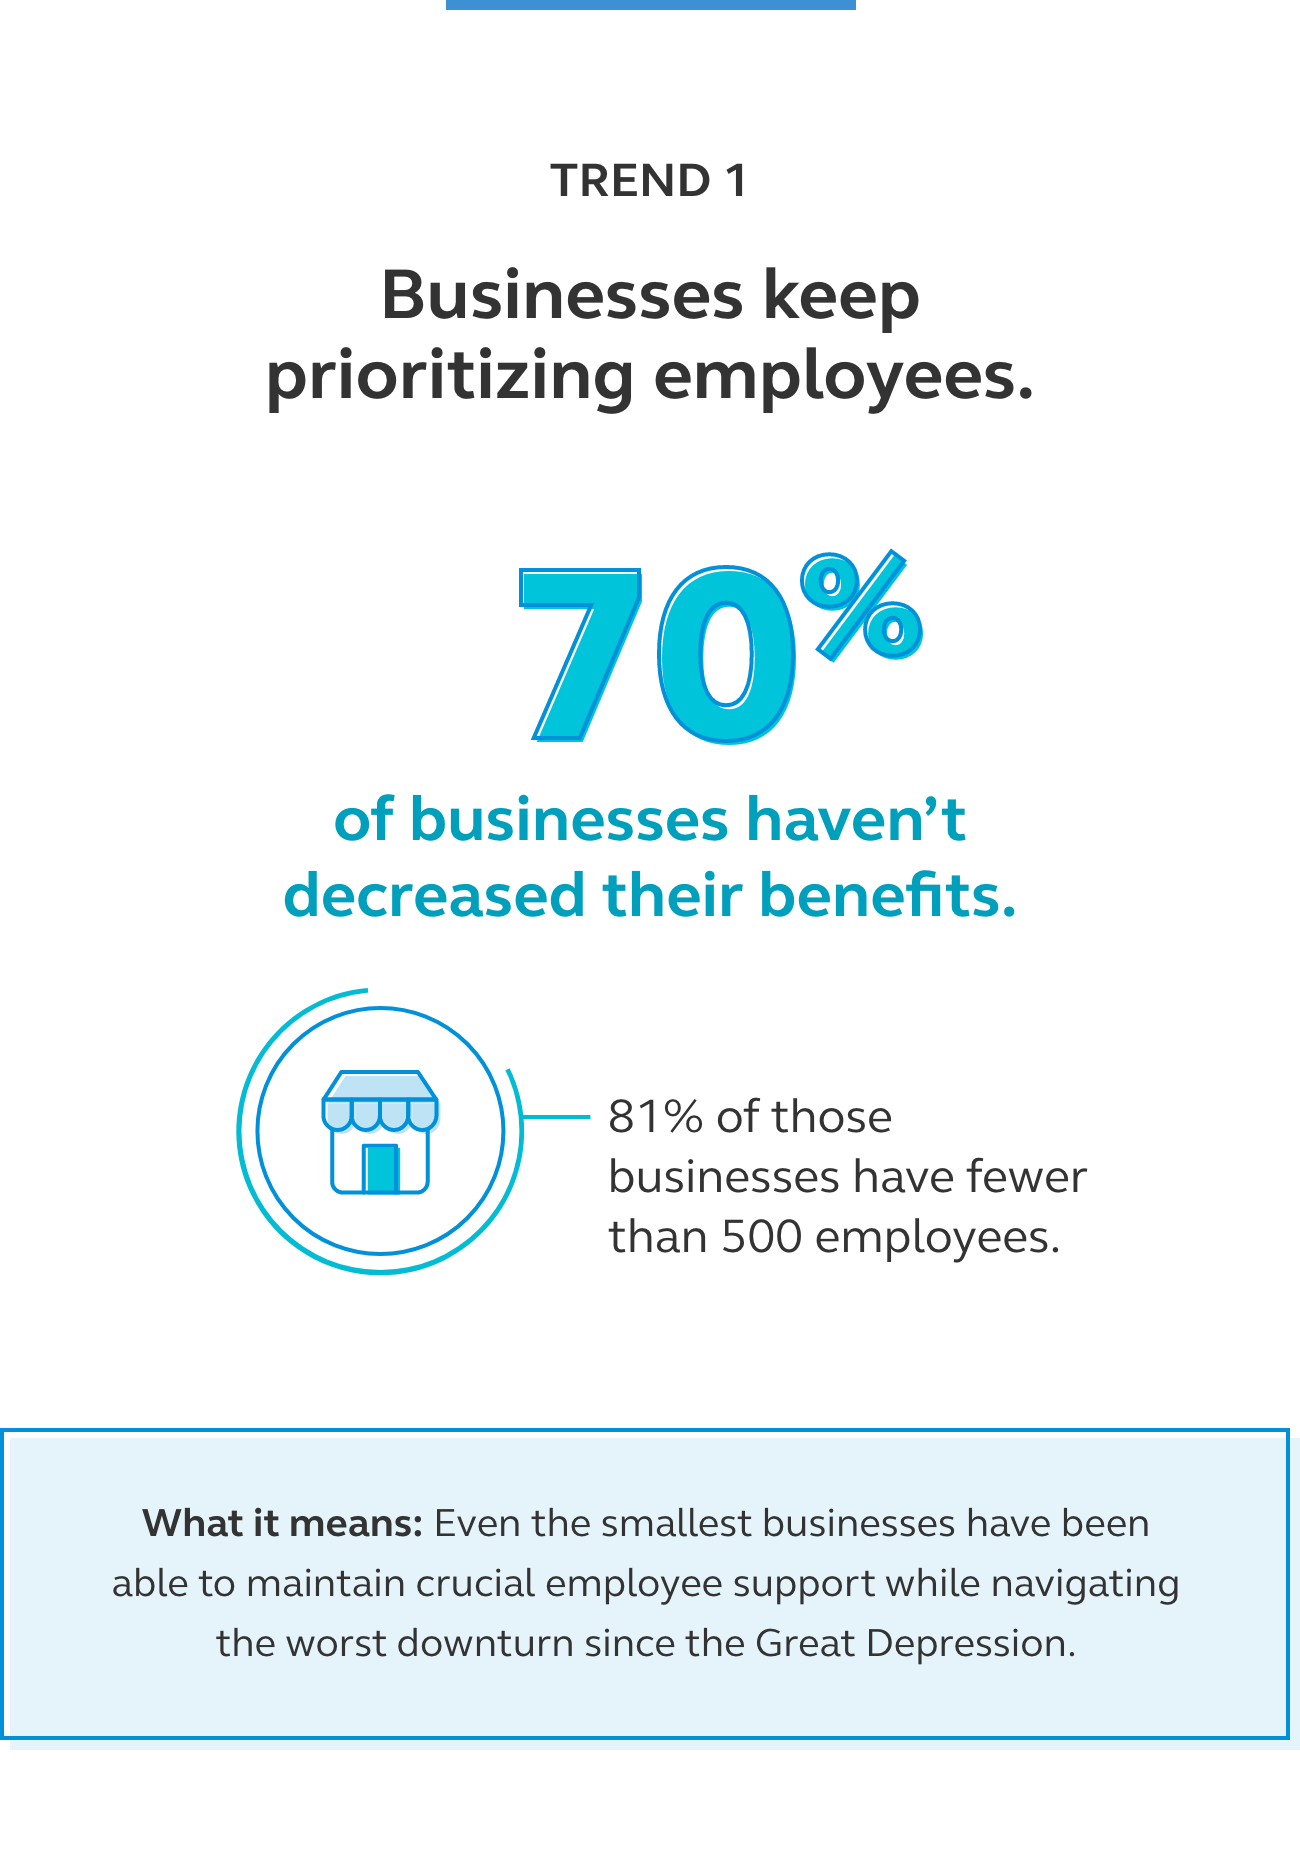 Graphic showing that 70% of businesses haven't decreased their benefits.